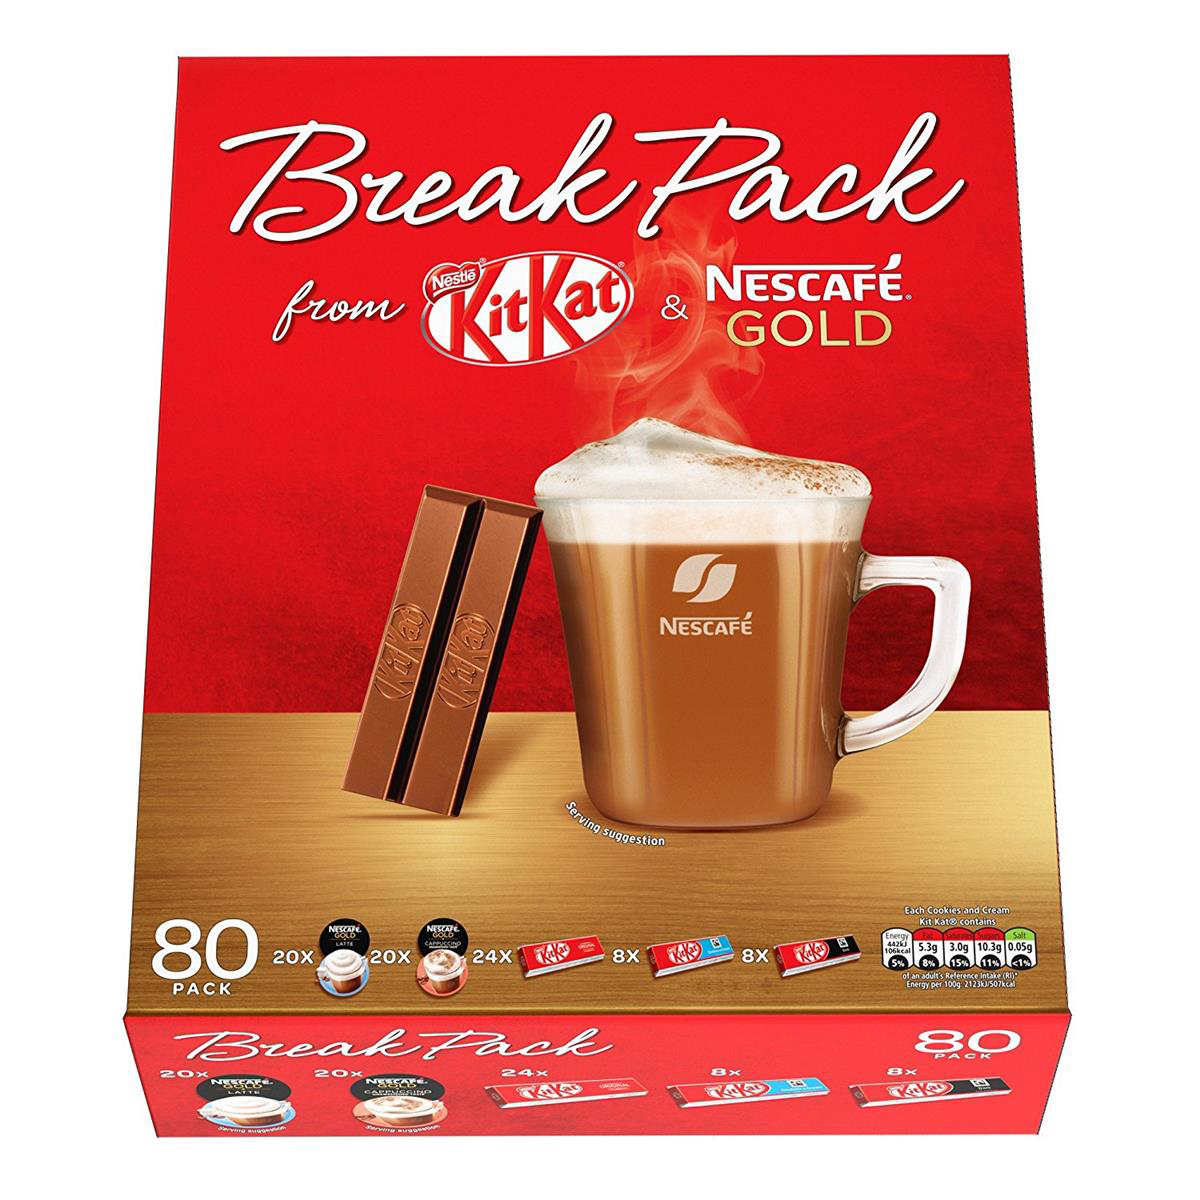 Nestle Break Pack - Containing an 80 pack combination  of Kat Kat s and Nescafe Coffees  Ref 12338657